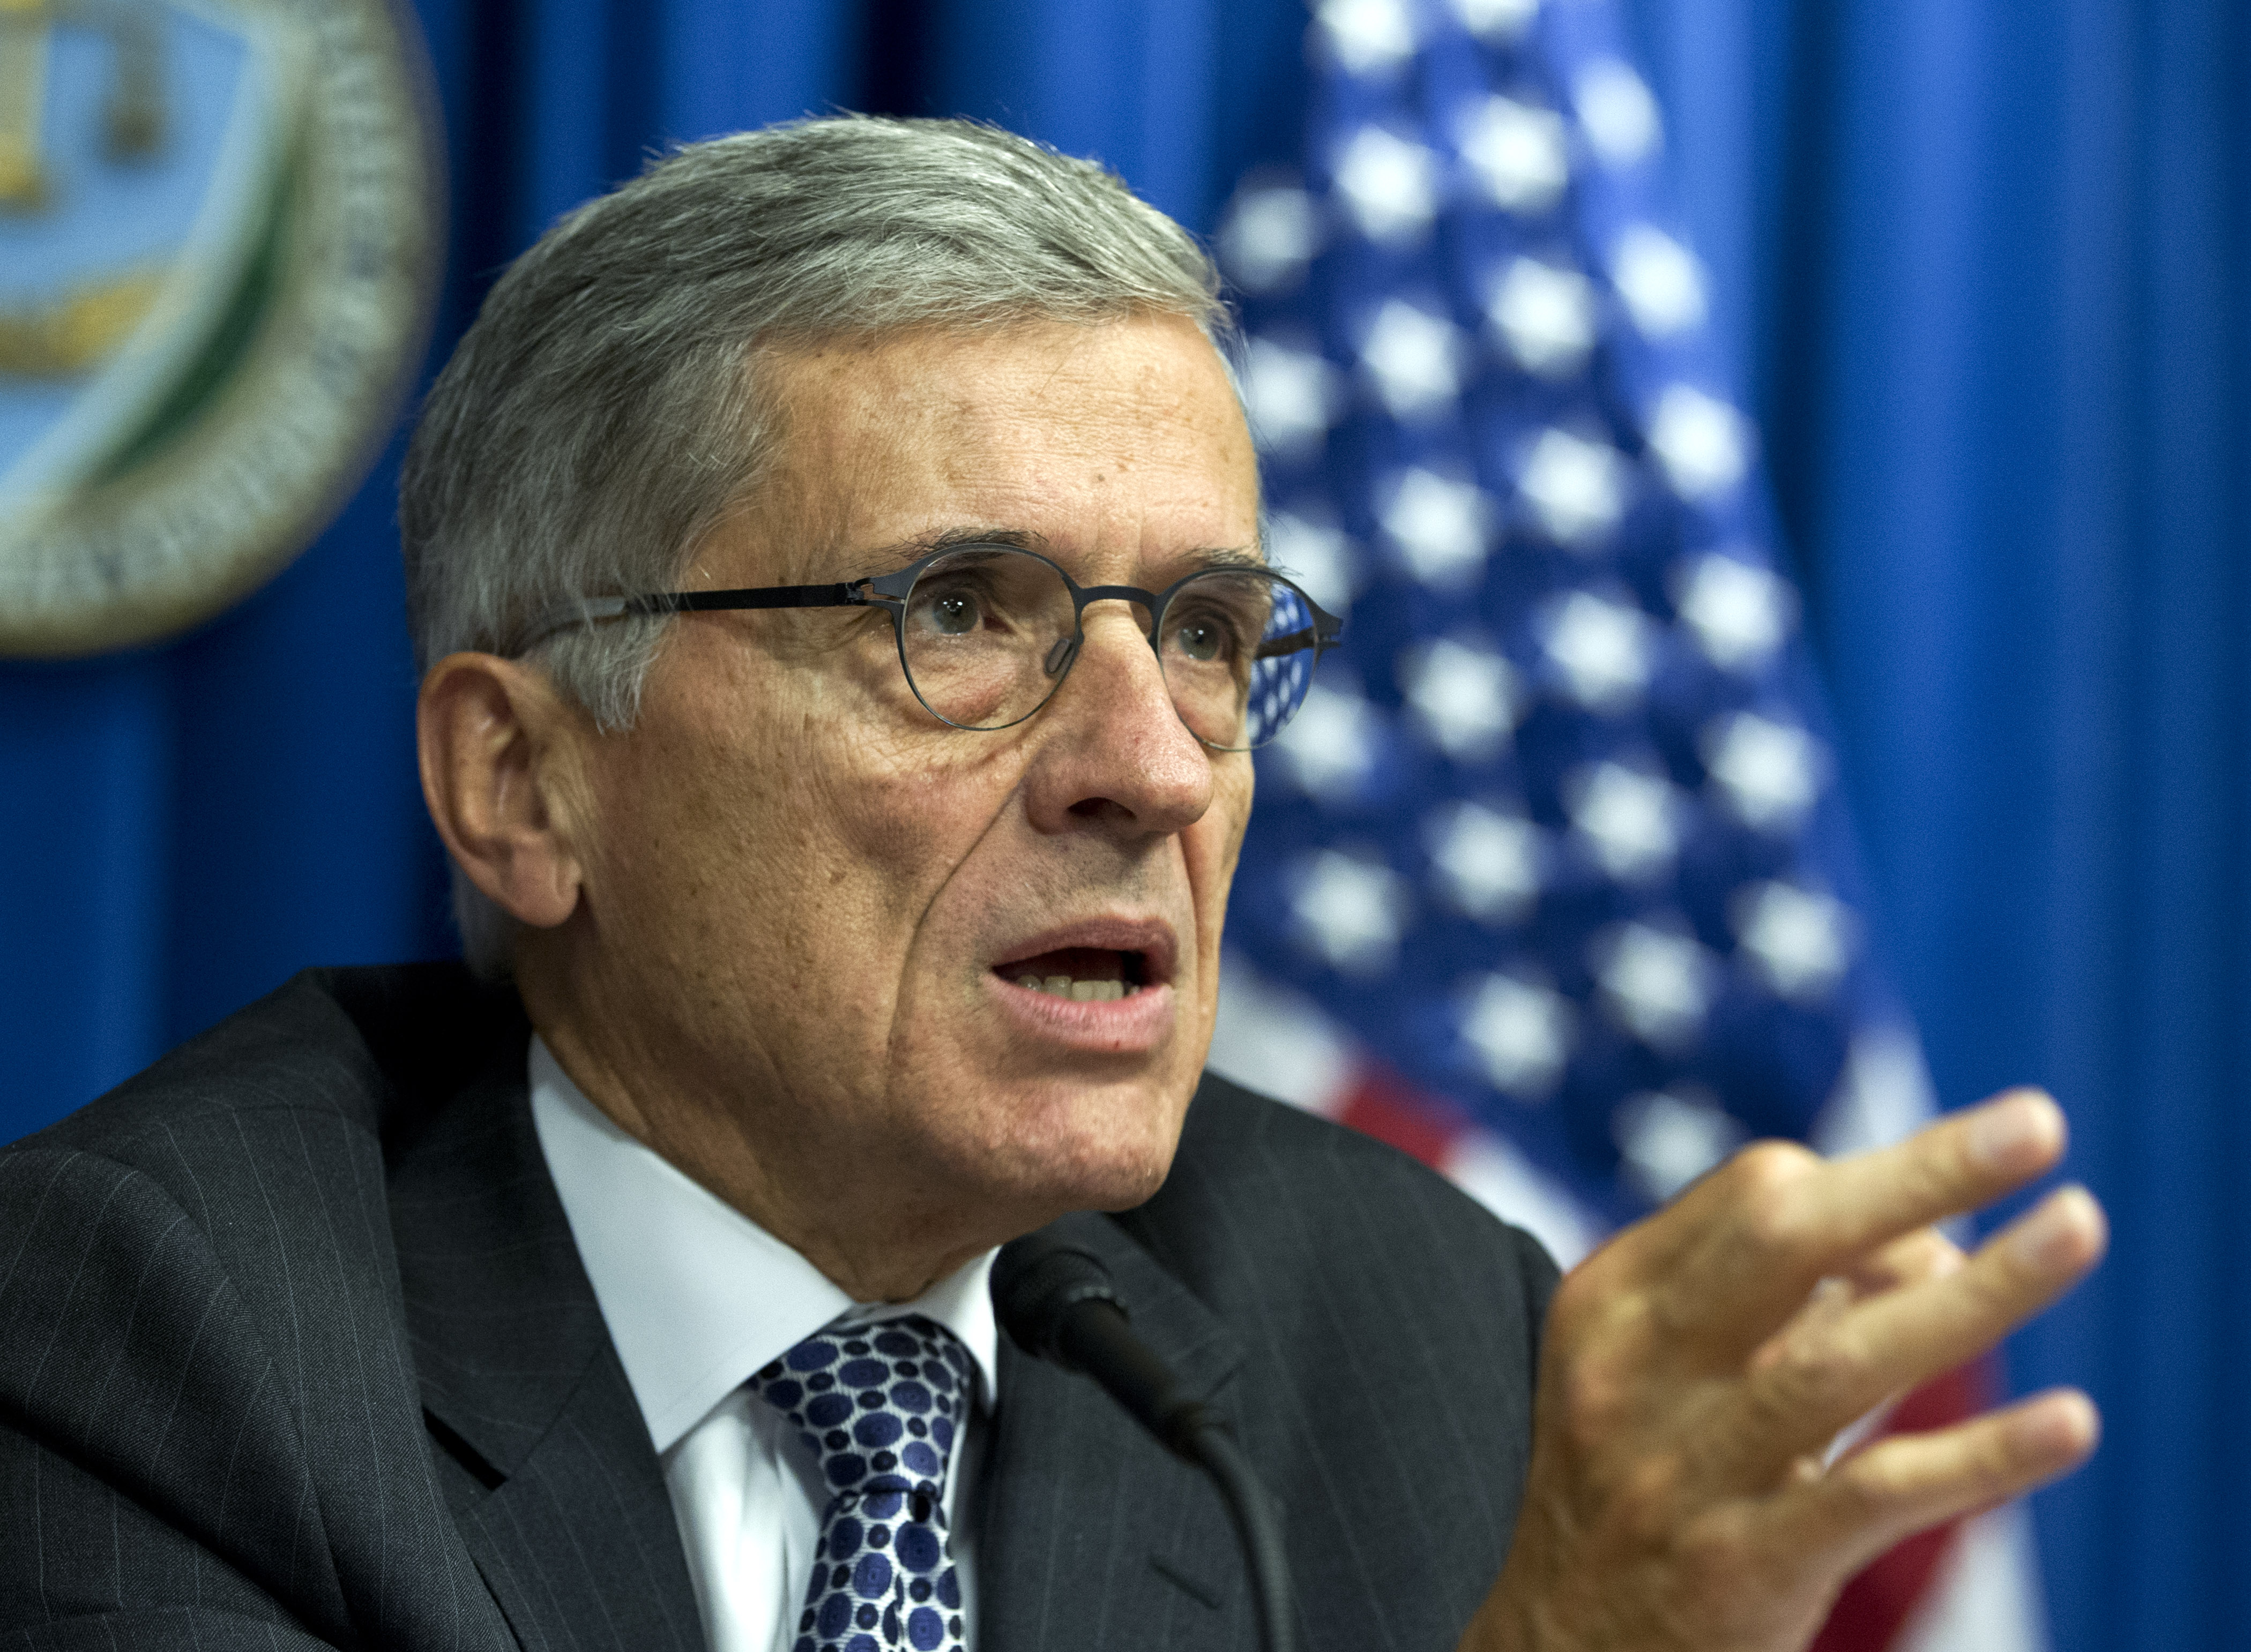 Federal Communications Commission (FCC) Chairman Tom Wheeler speaks during new conference in Washington on Oct. 8, 2014.